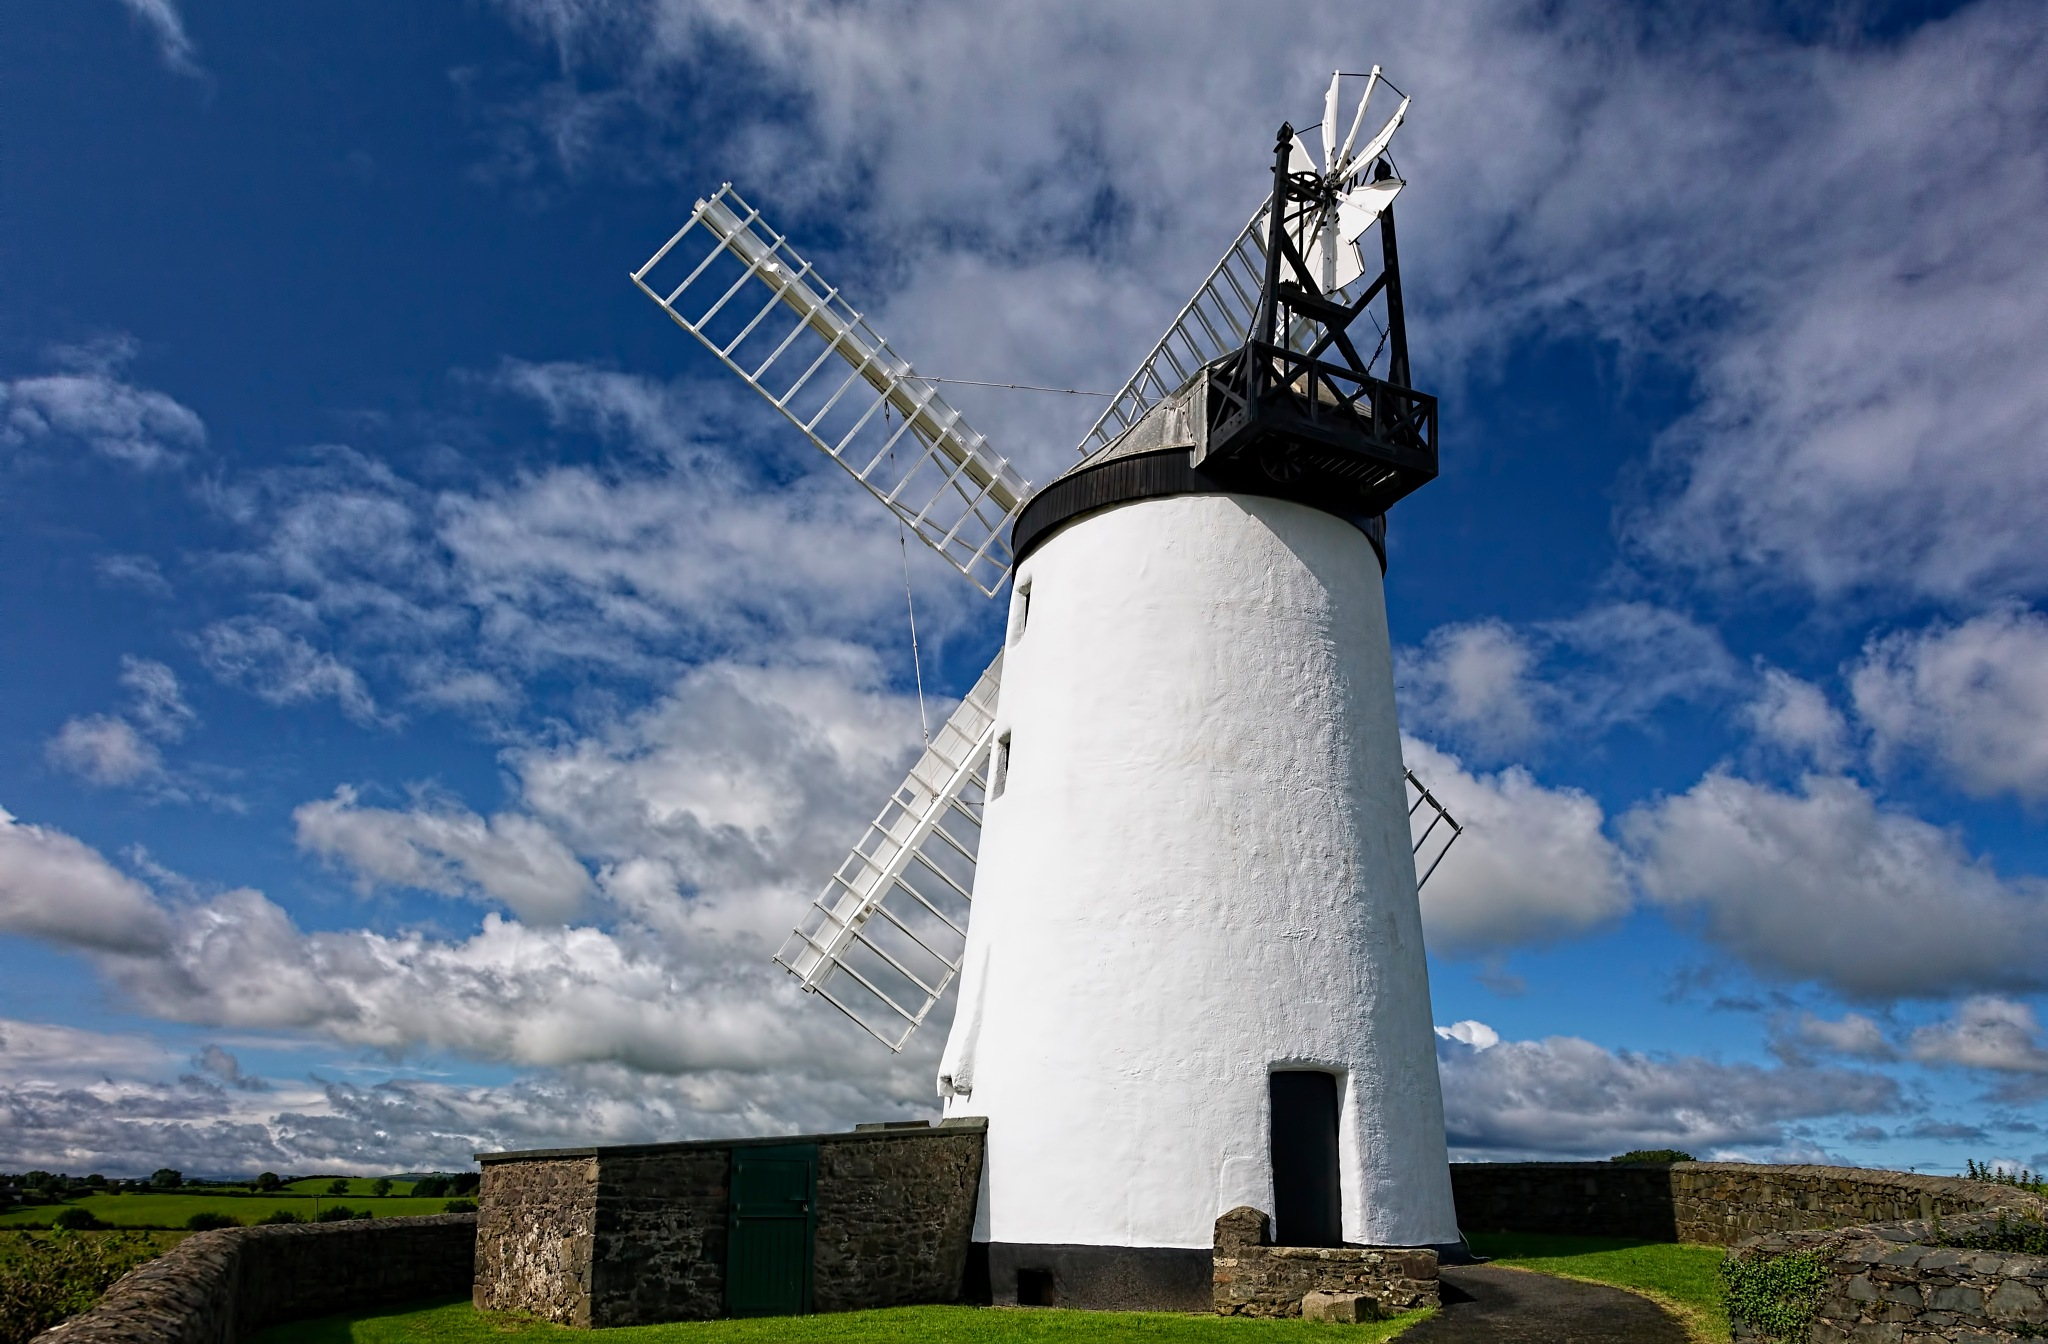 Ballycopeland windmill  2 of 2 by Peter Ellison